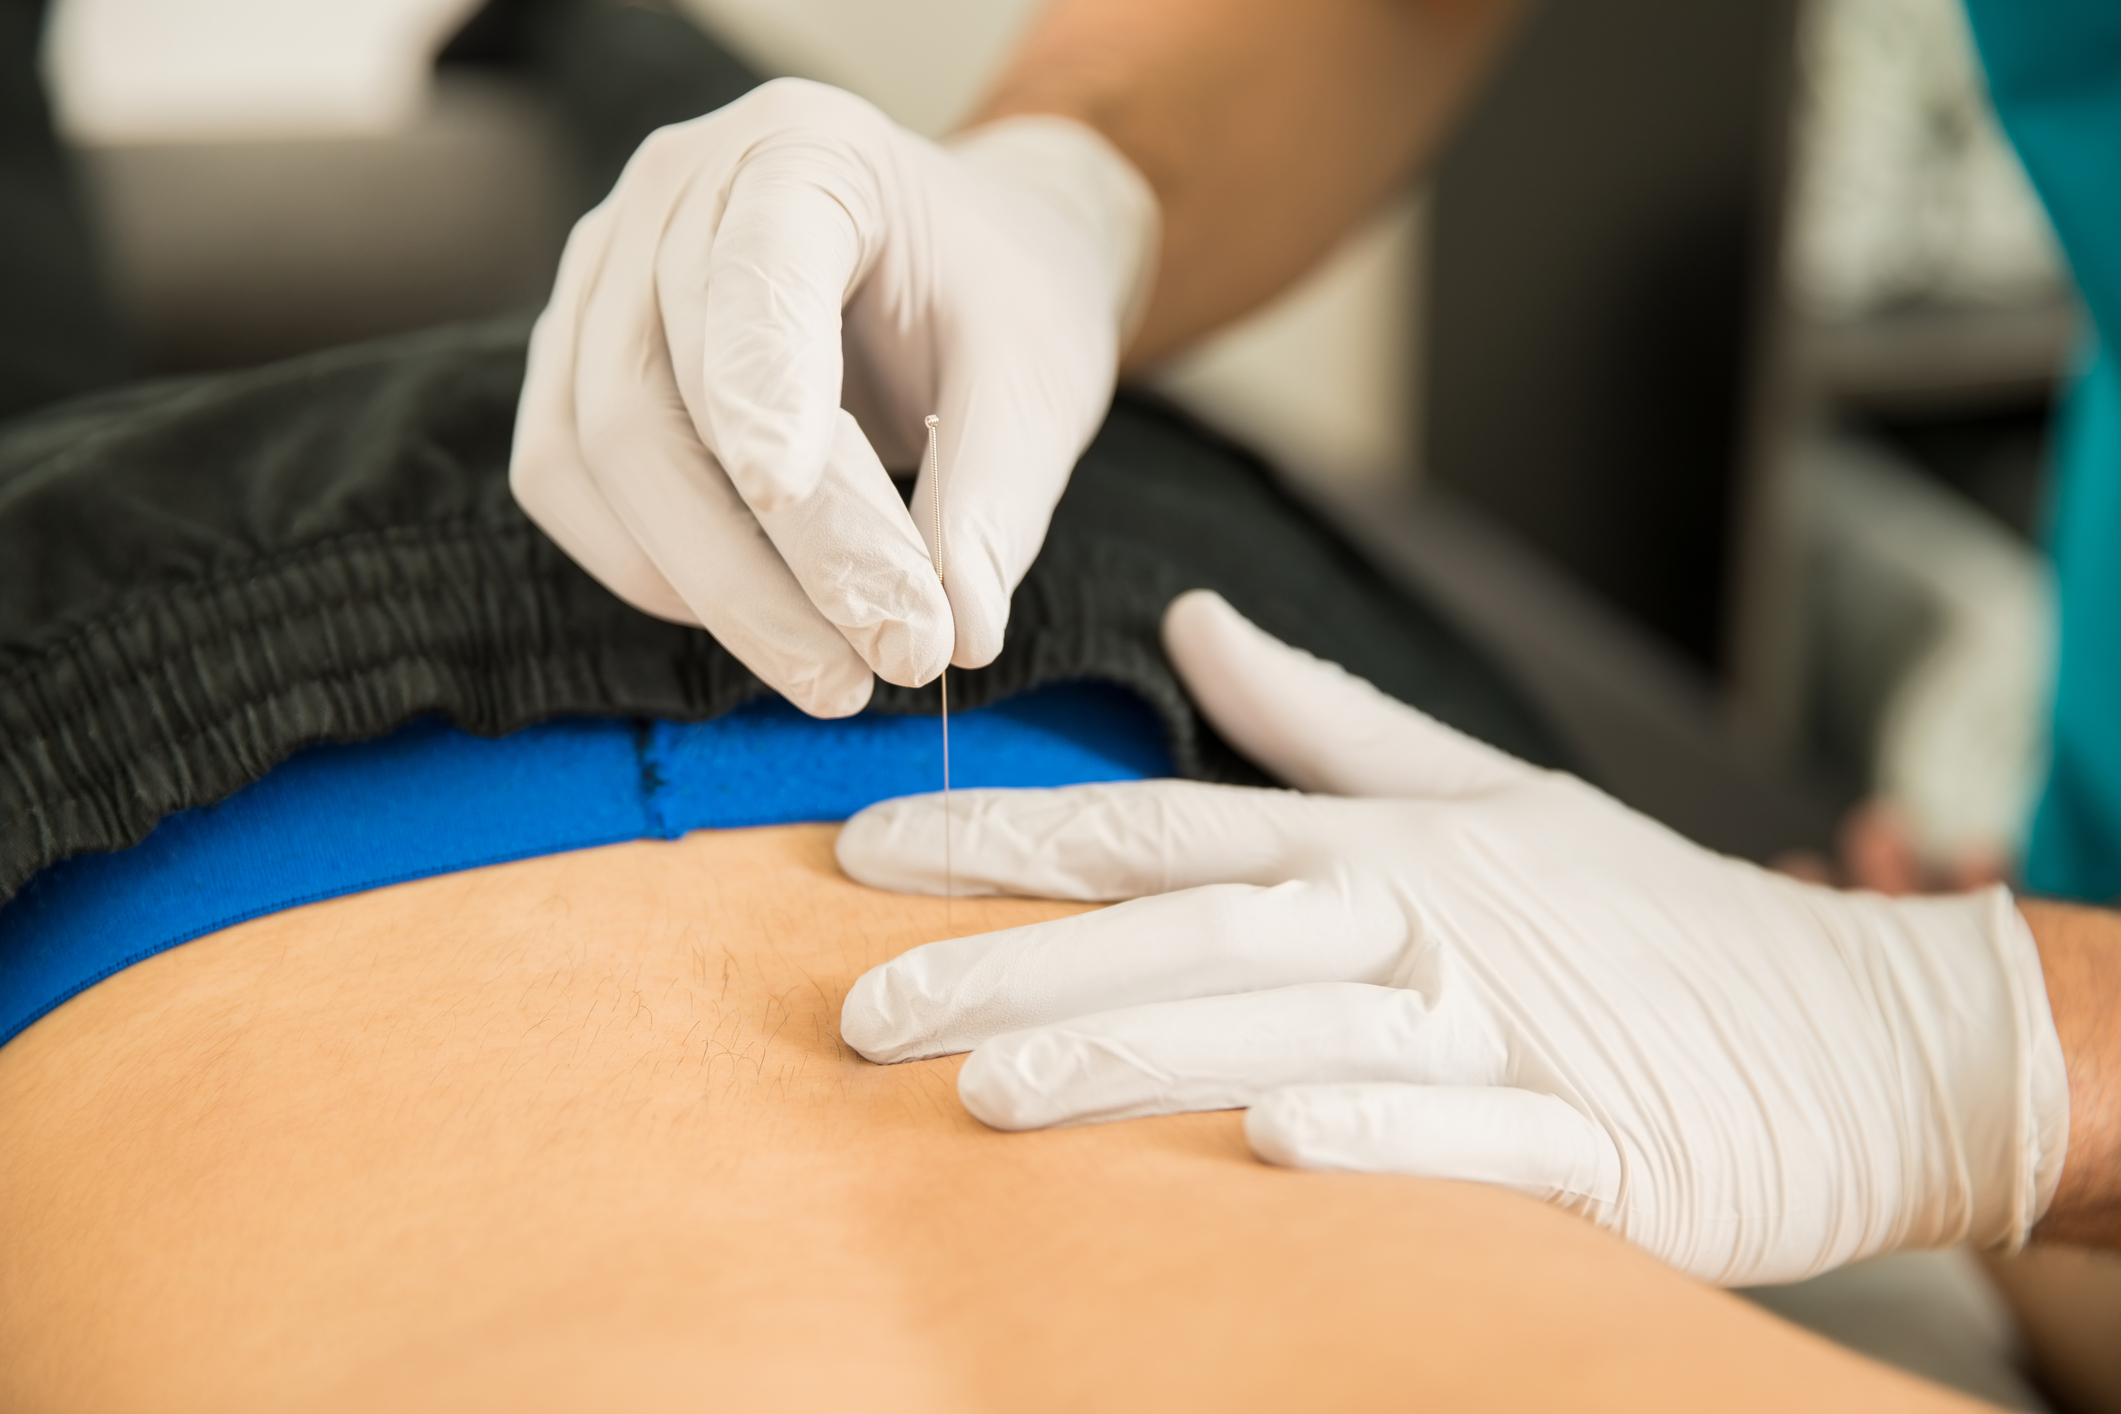 Physiotherapist performing dry needling treament on a back injury